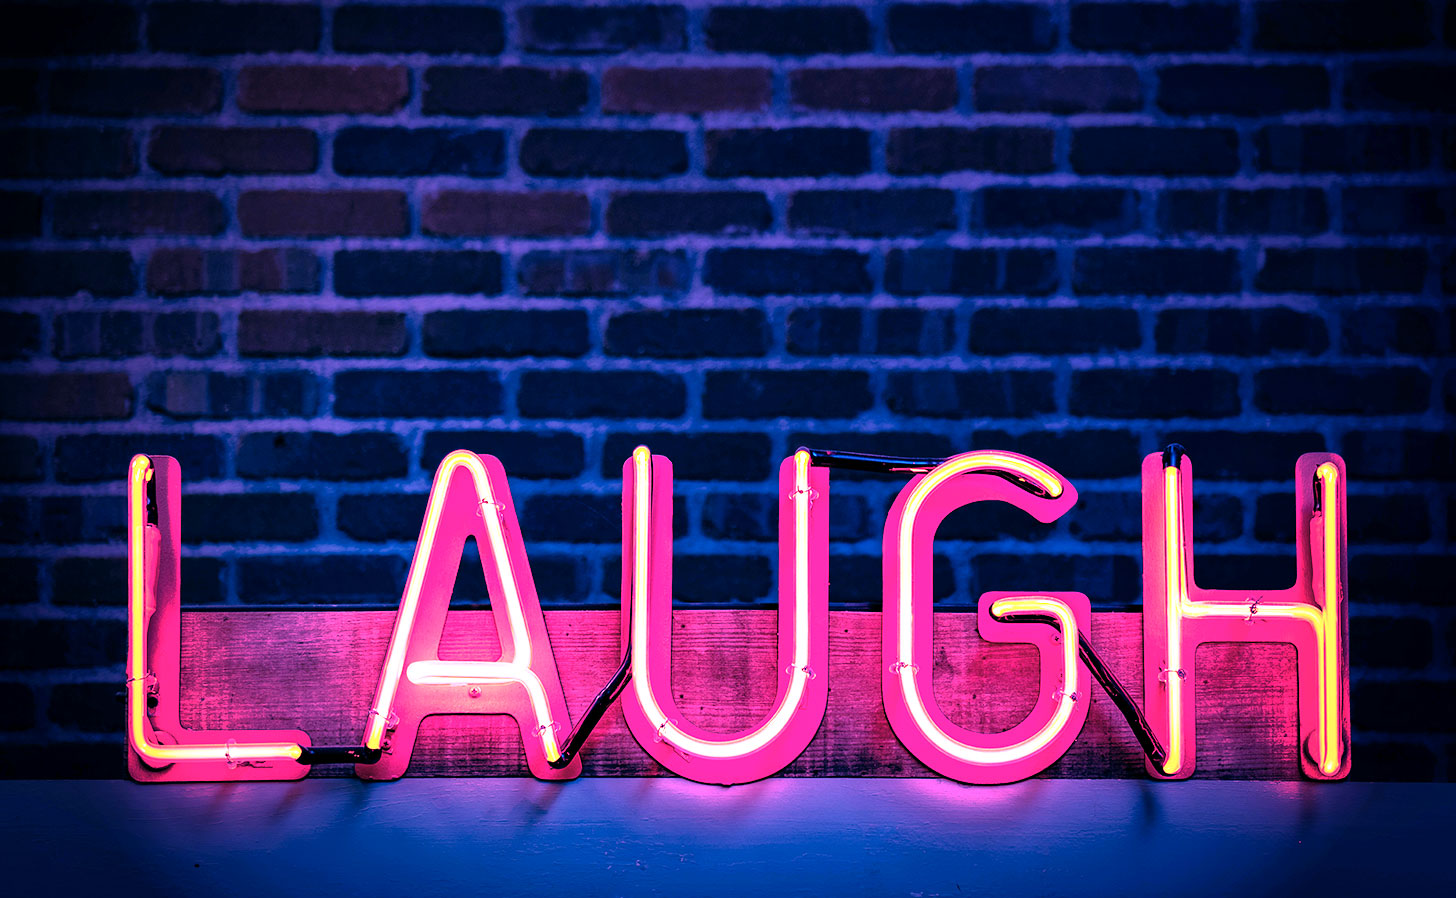 Laugh. Photo: Tim Mossholder / Unsplash